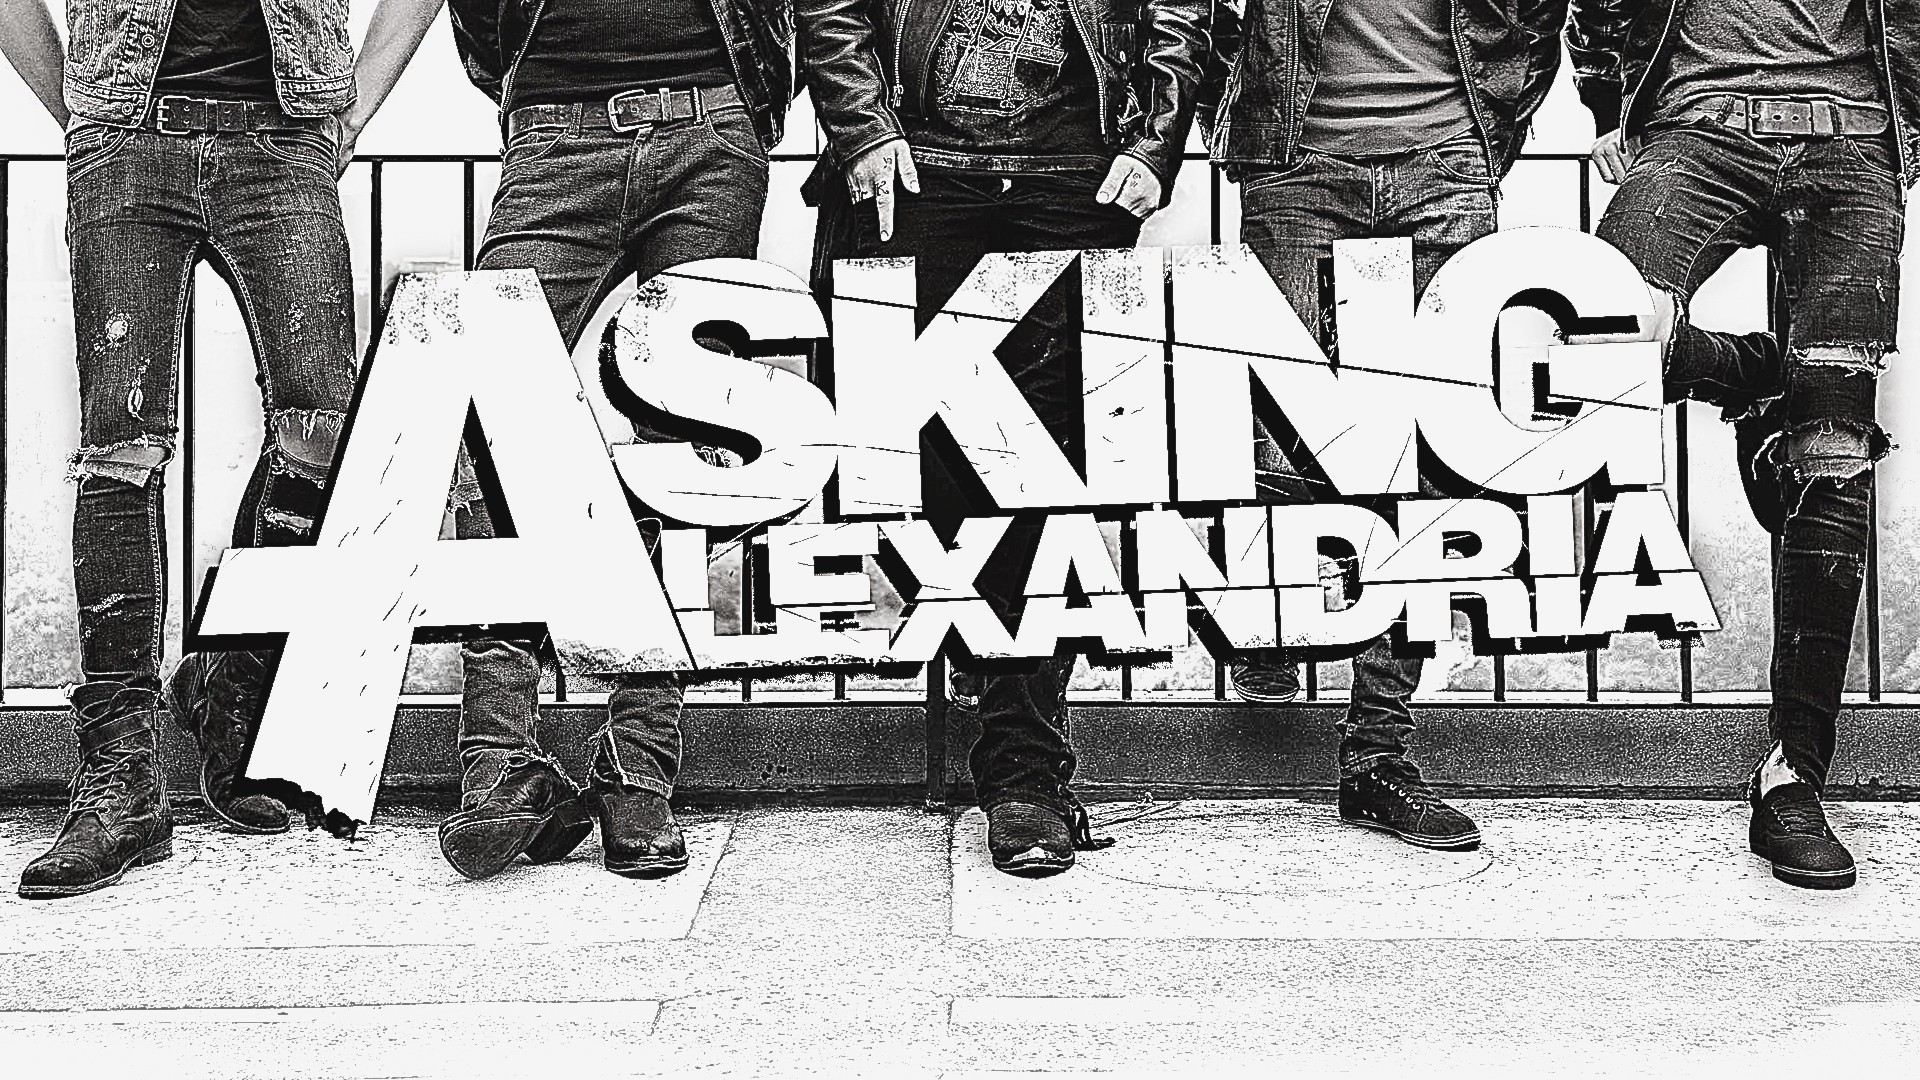 1920x1080 Asking Alexandria Wallpaper Source · Imagenes De Asking Alexandria  Wallpapers 33 Wallpapers